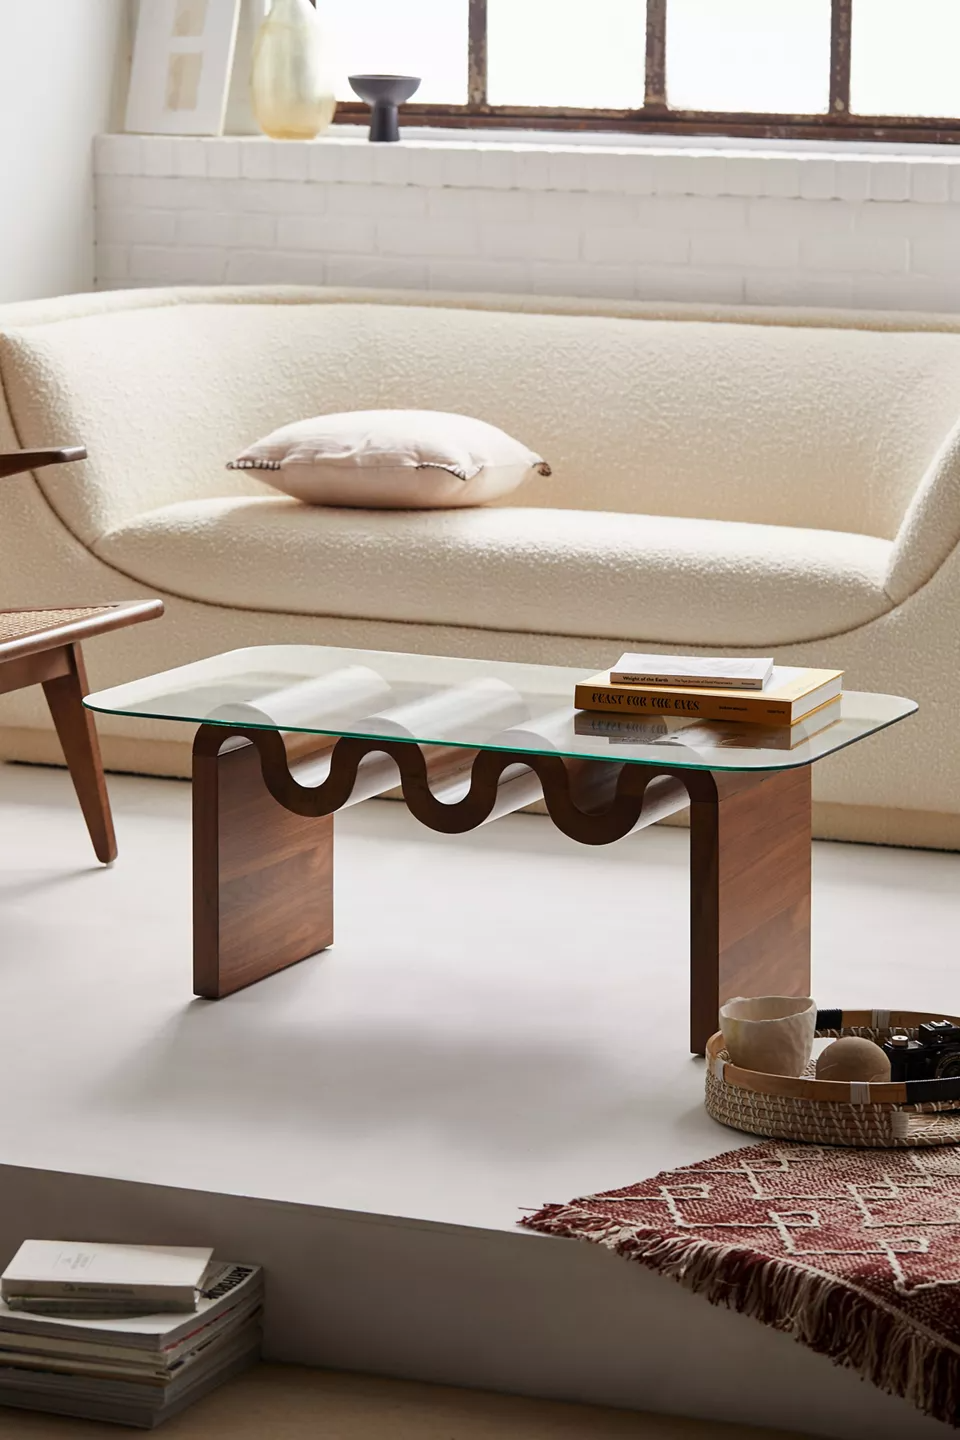 Aria Coffee Table In 2021 Coffee Table Coffee Table Urban Outfitters Table [ 1440 x 960 Pixel ]